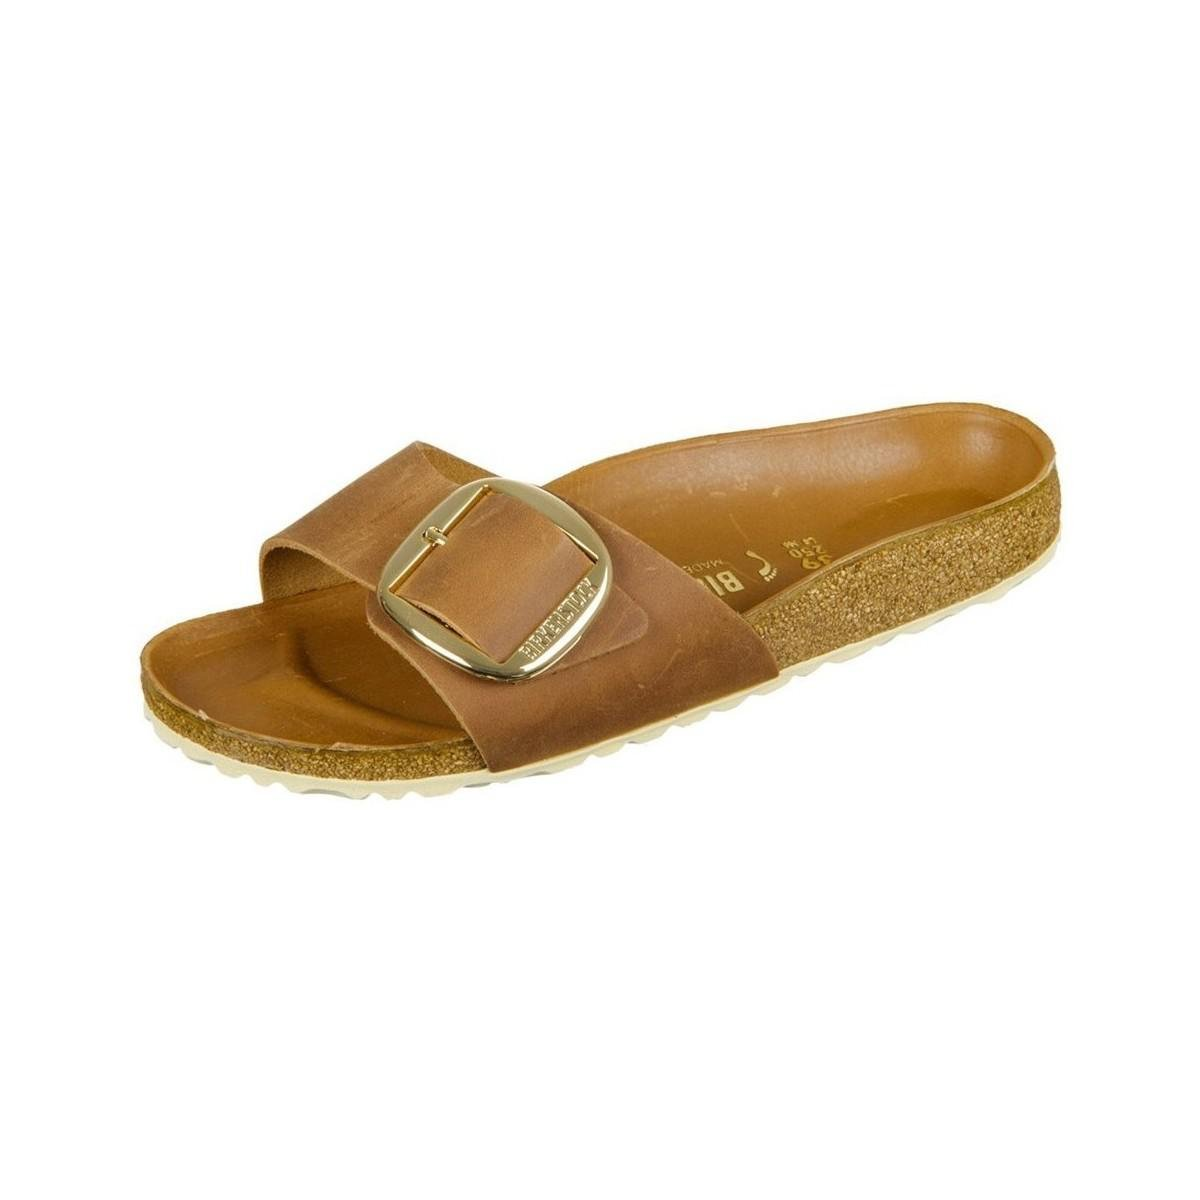 702724a48be Birkenstock Madrid Big Buckle Cognac Natural Leather Women s Mules ...